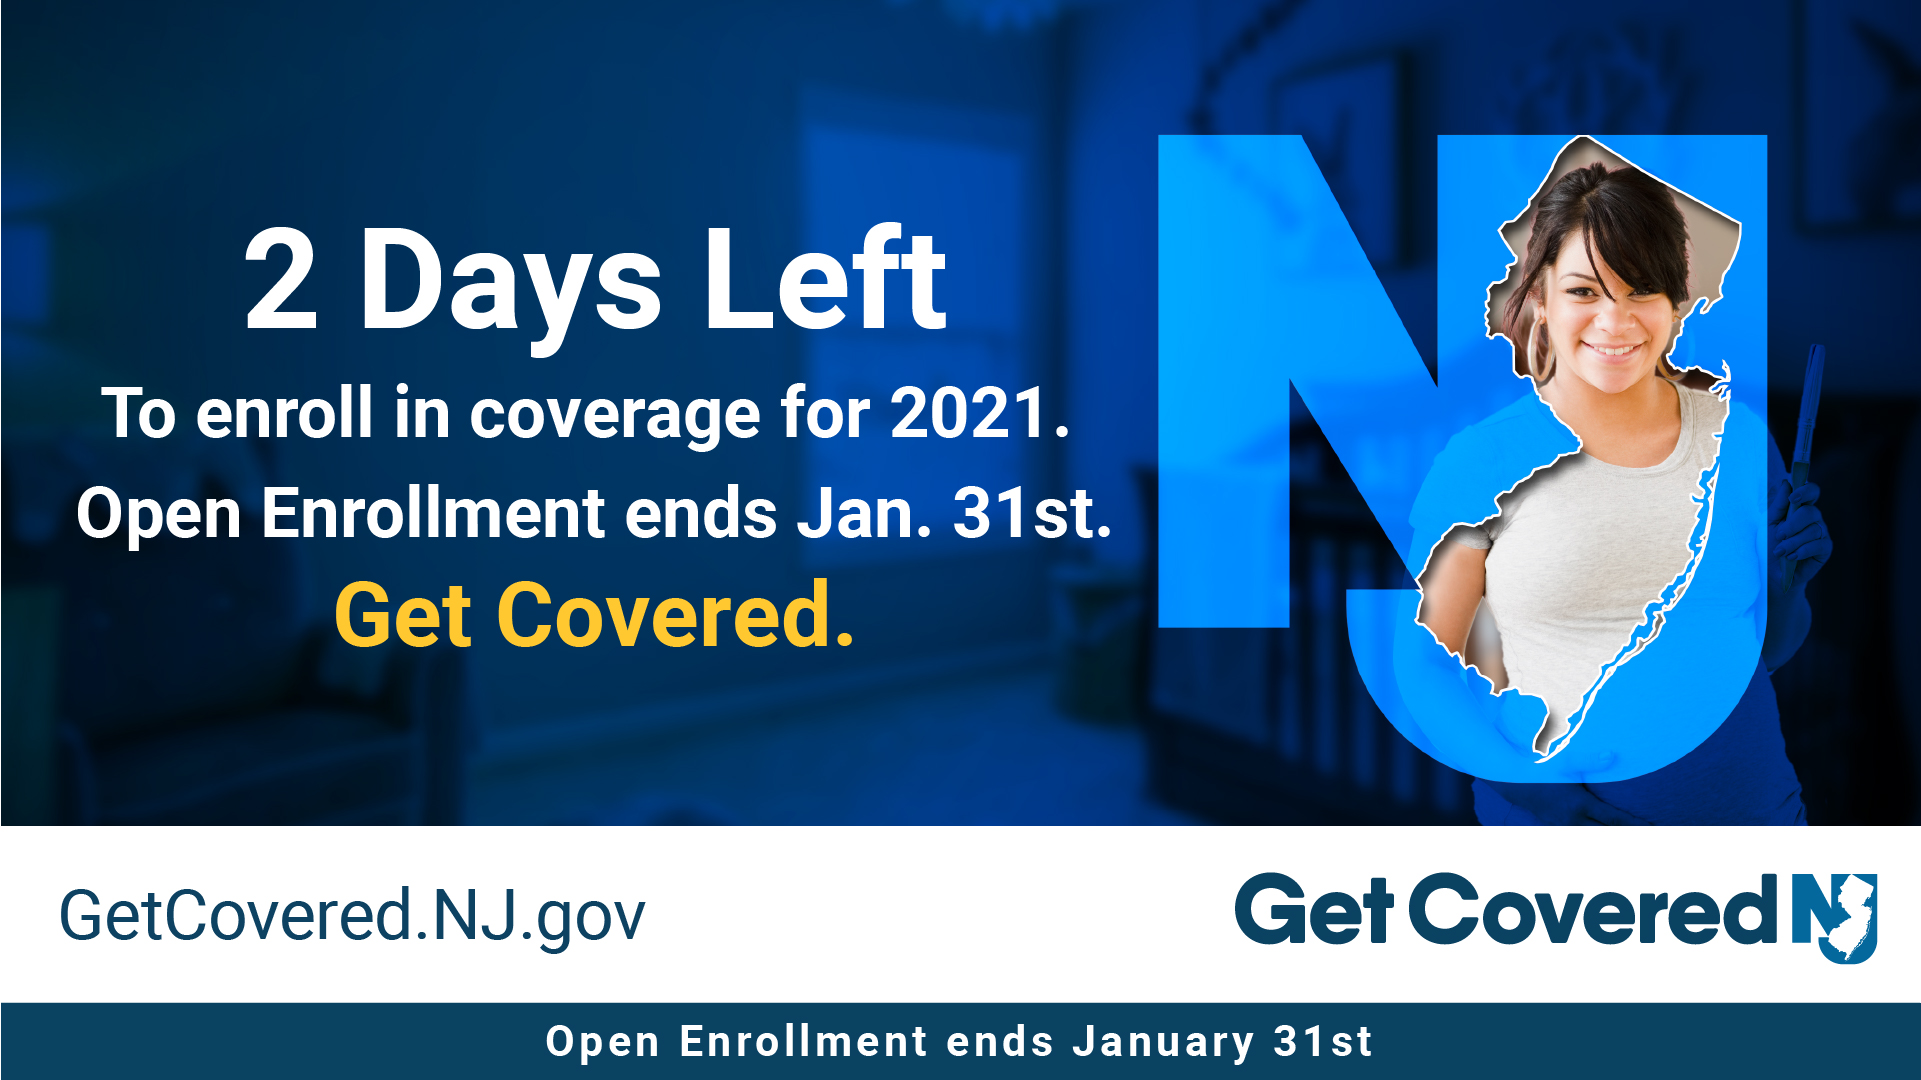 Image Contains screenshot of 2 Days left to enroll in coverage